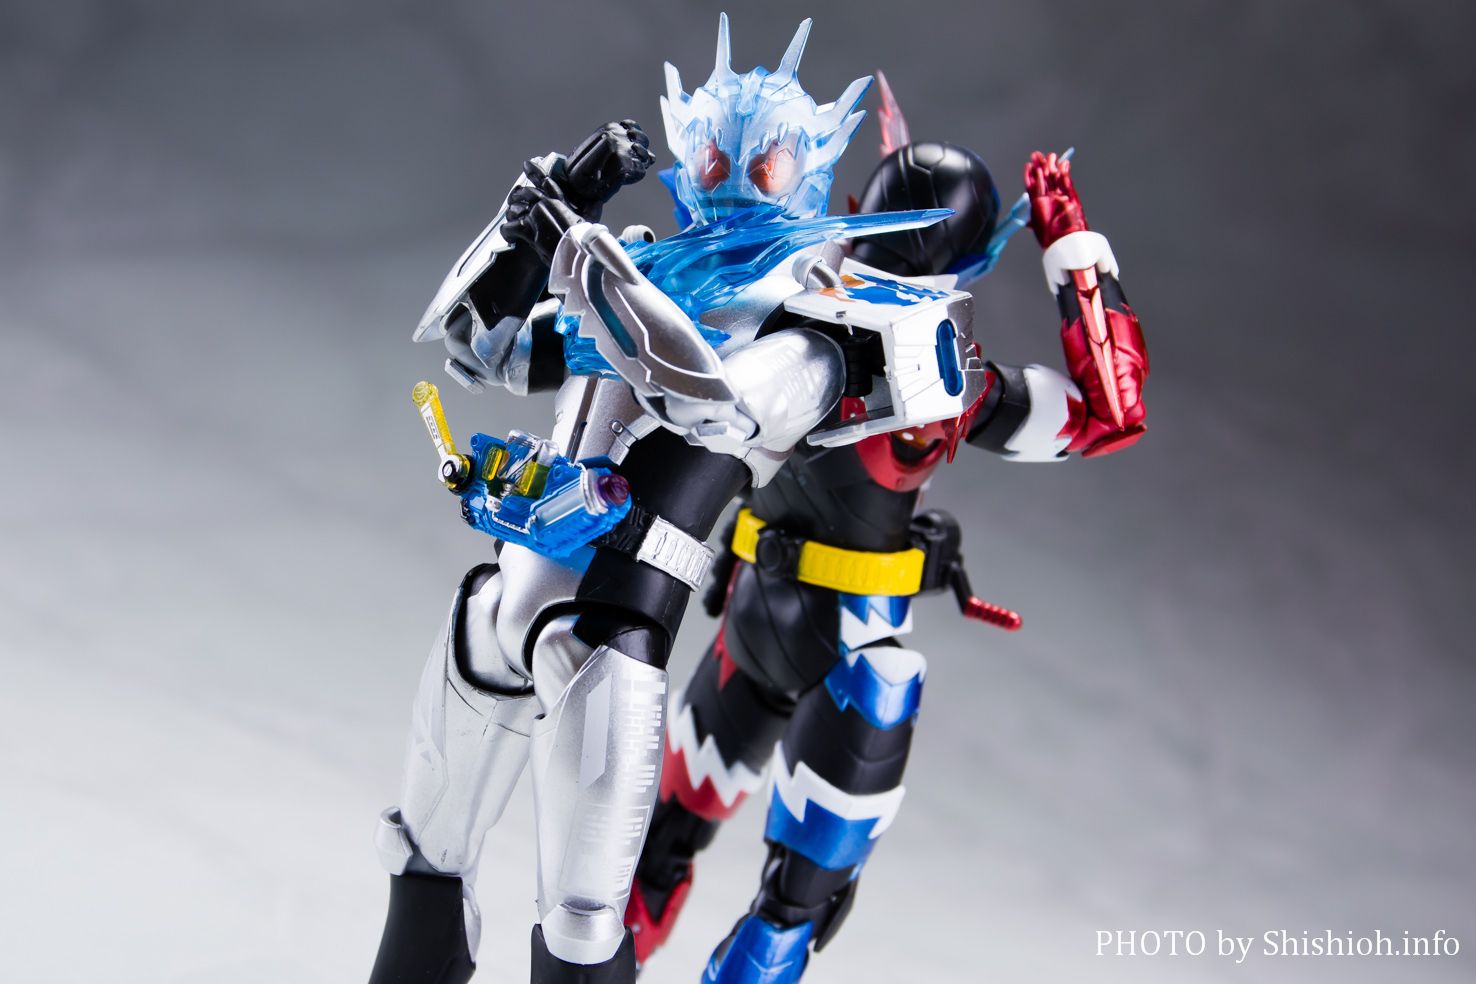 S.H.Figuarts 仮面ライダークローズチャージ